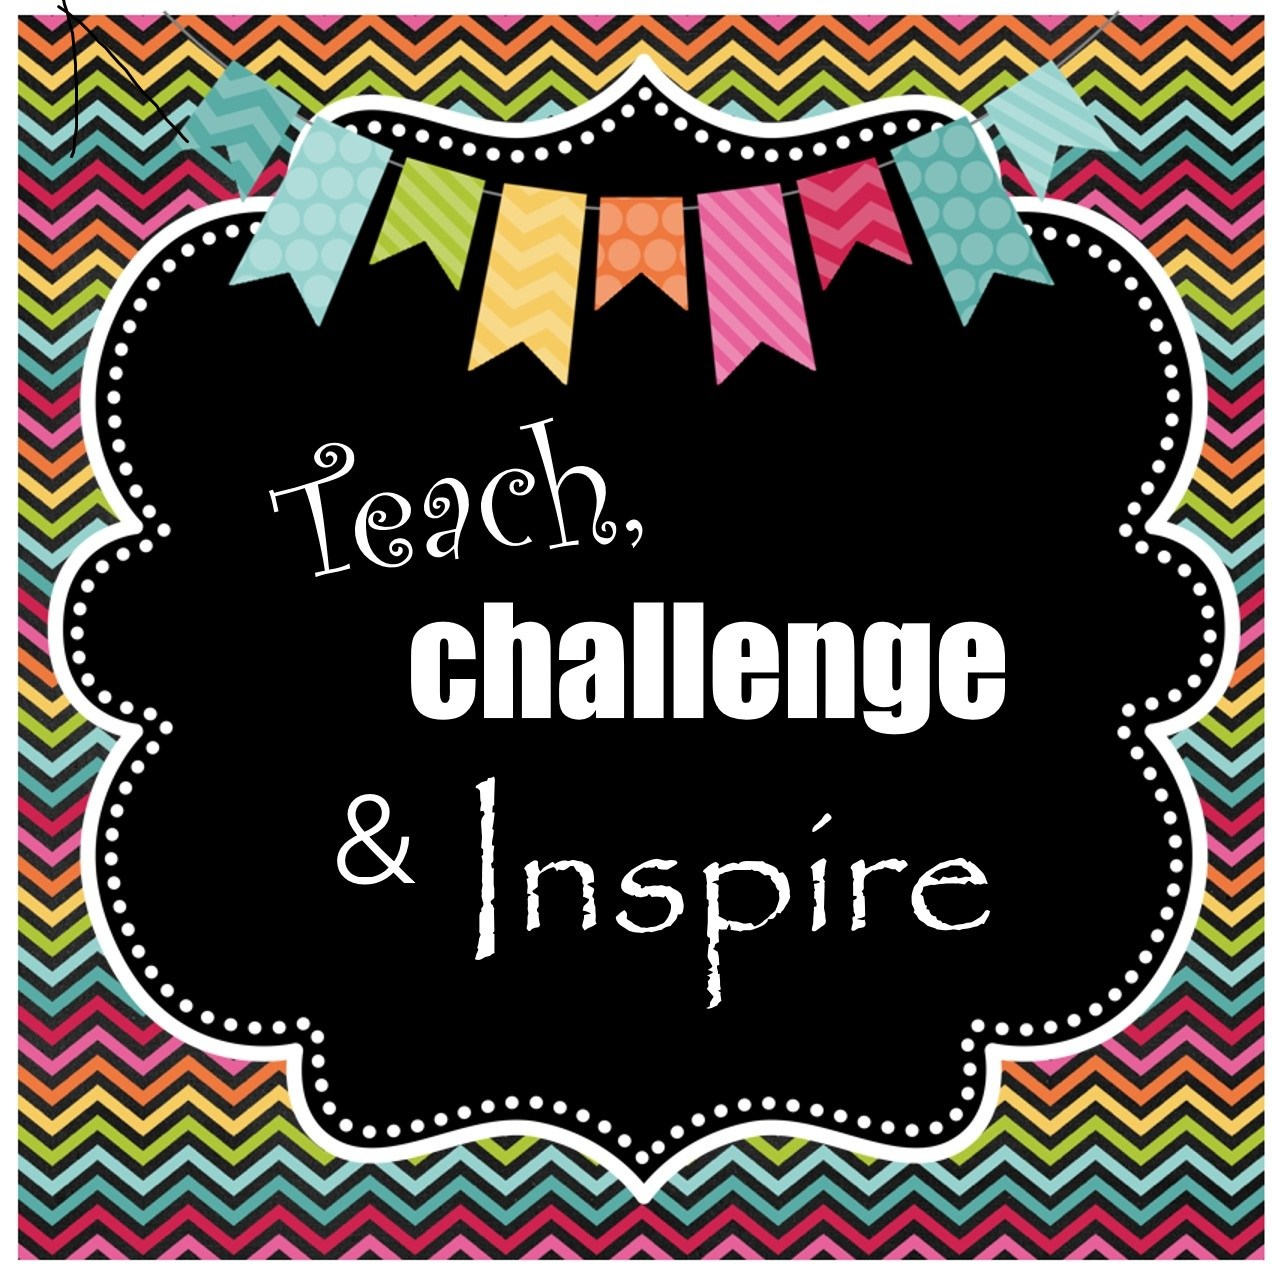 Teach, challenge and Inspire